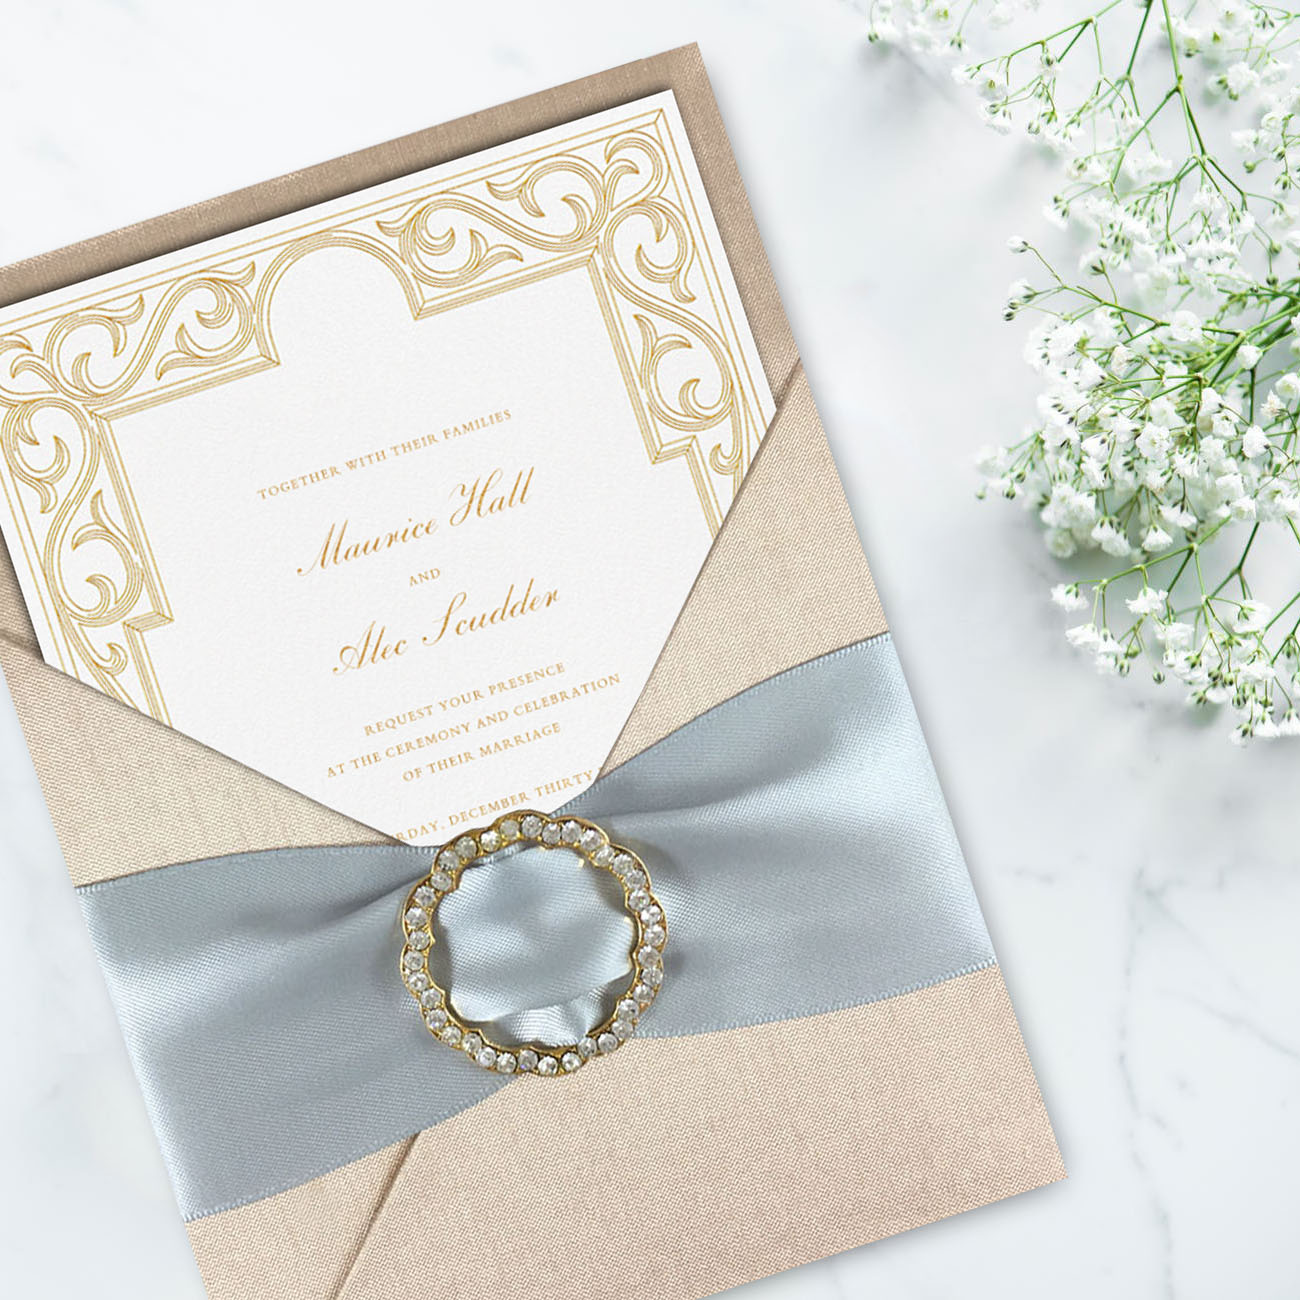 Luxury wedding invitation card design